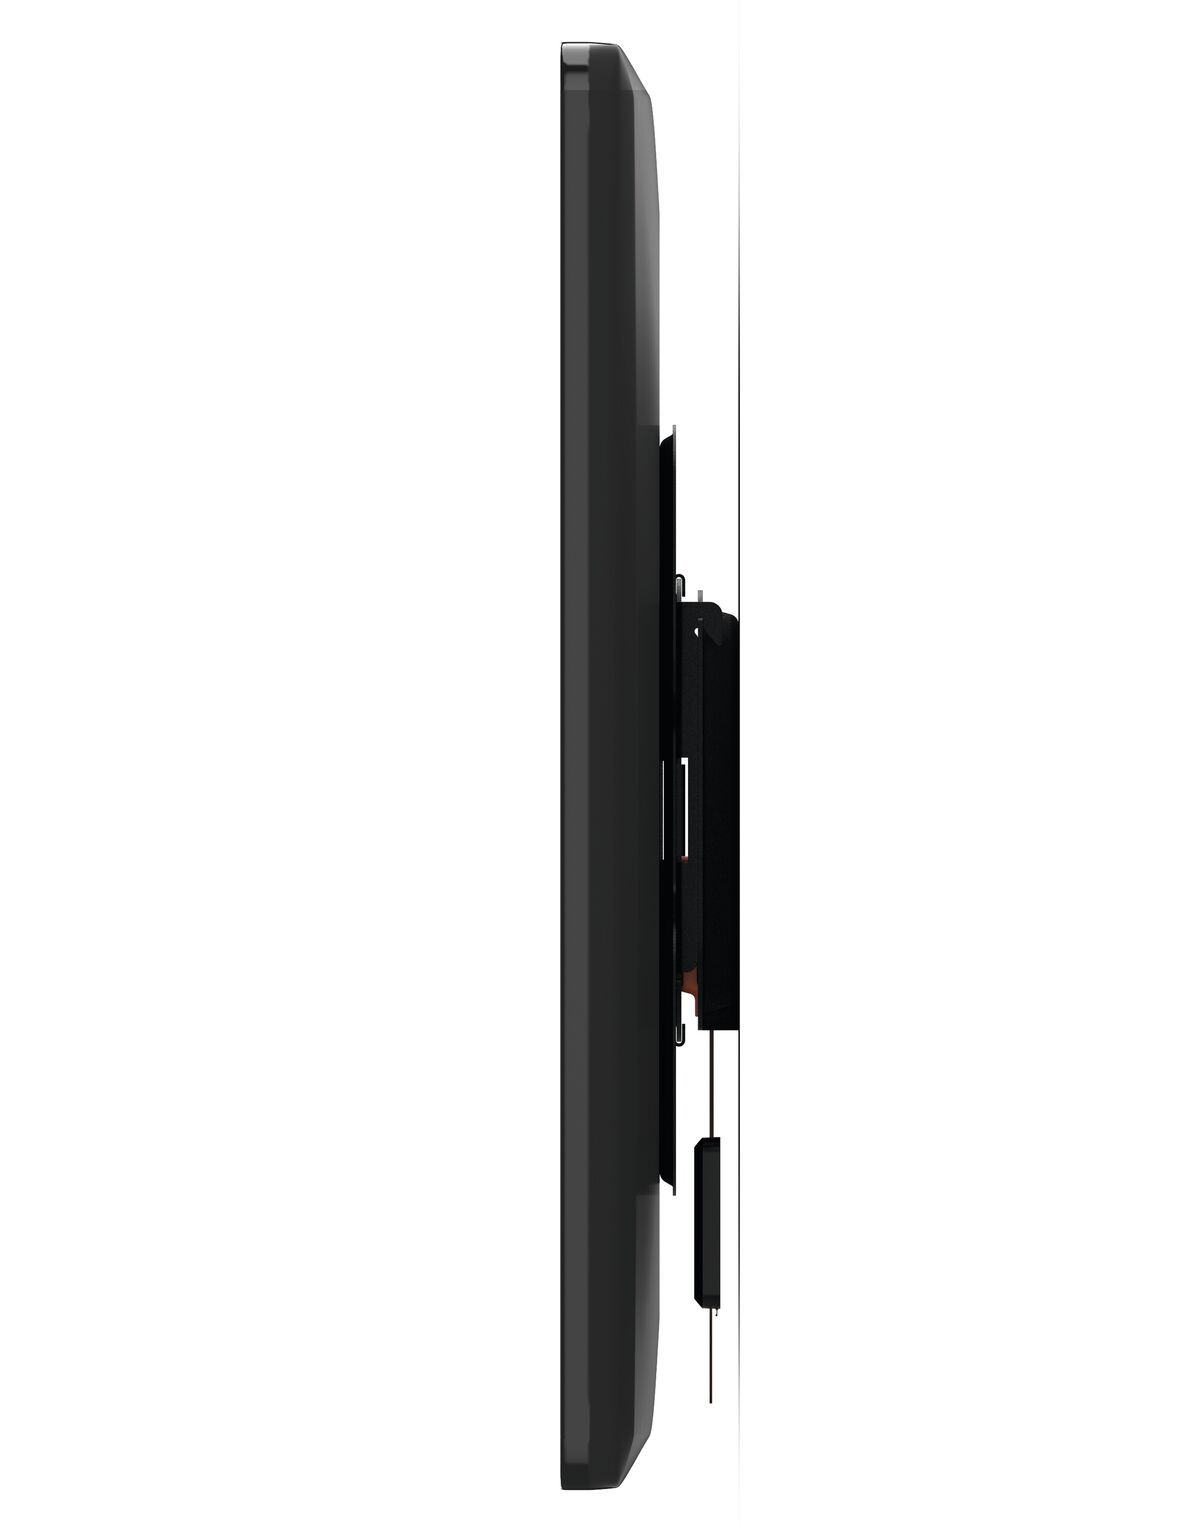 Vogel's WALL 2105 Fixed TV Wall Mount - Suitable for 19 up to 40 inch TVs up to 15 kg - Detail